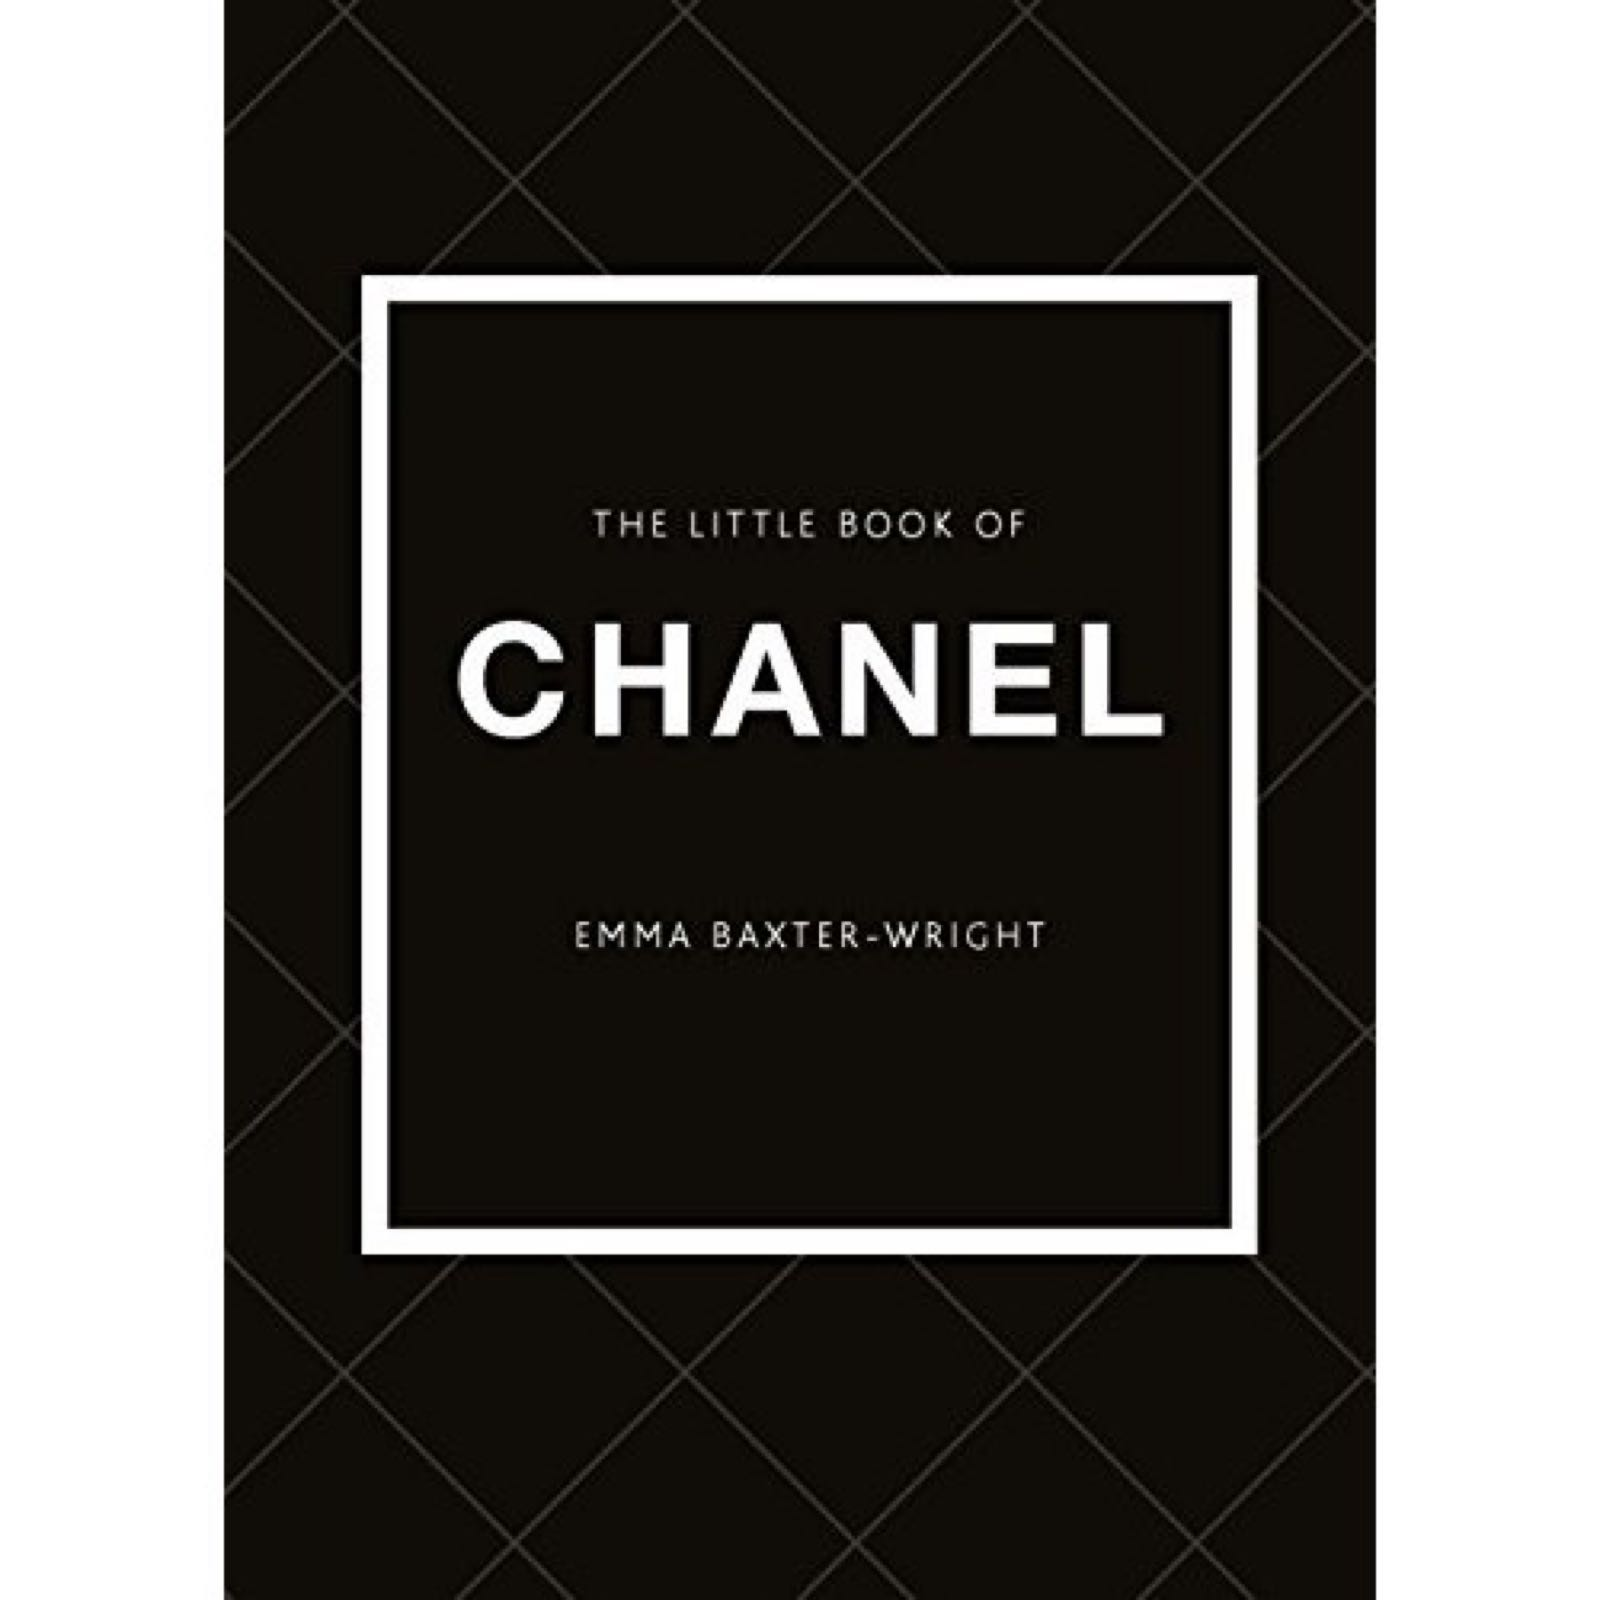 Little book of Chanel hard back book